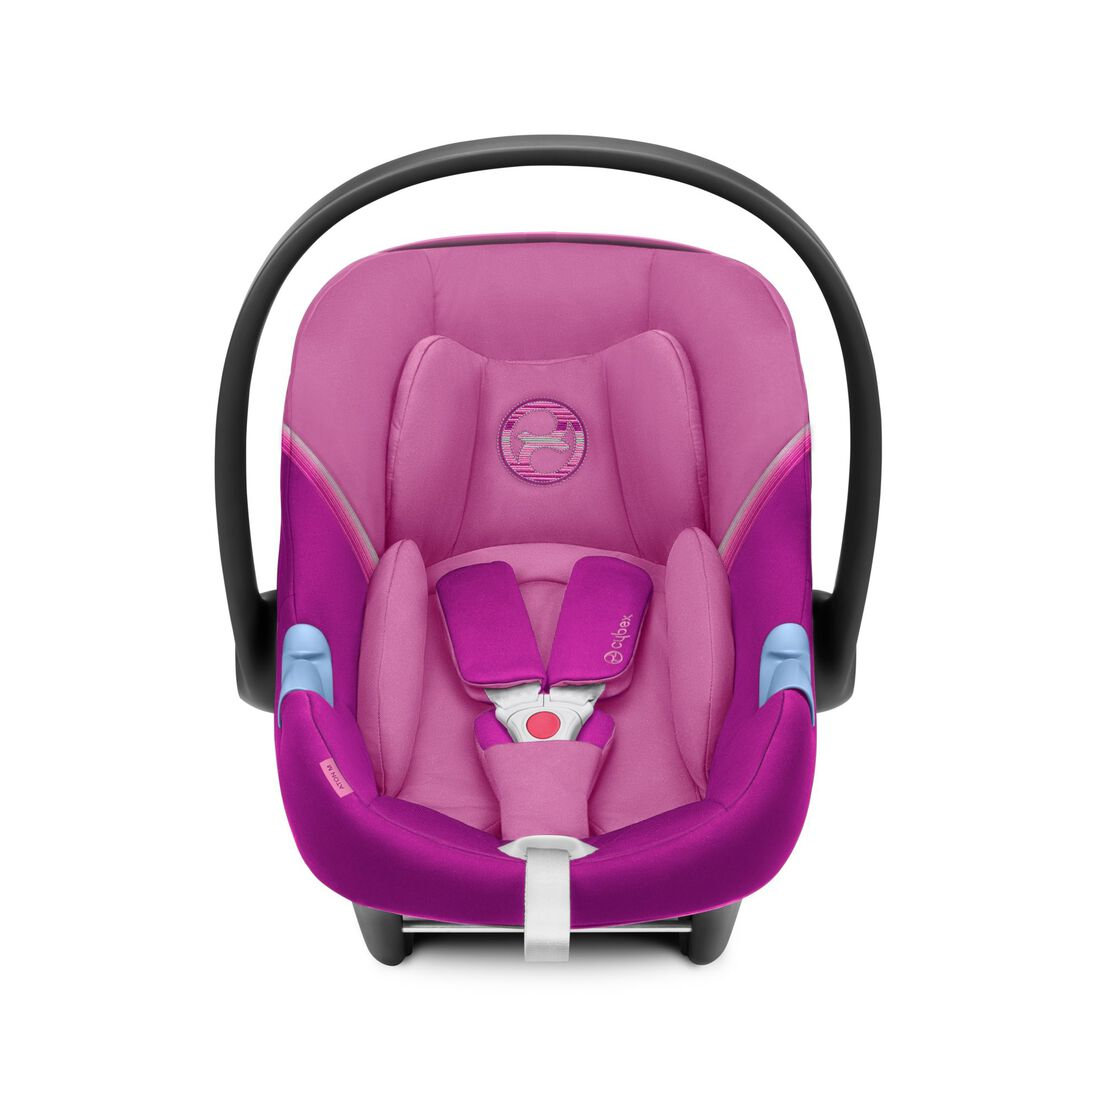 CYBEX Aton M i-Size - Magnolia Pink in Magnolia Pink large image number 2